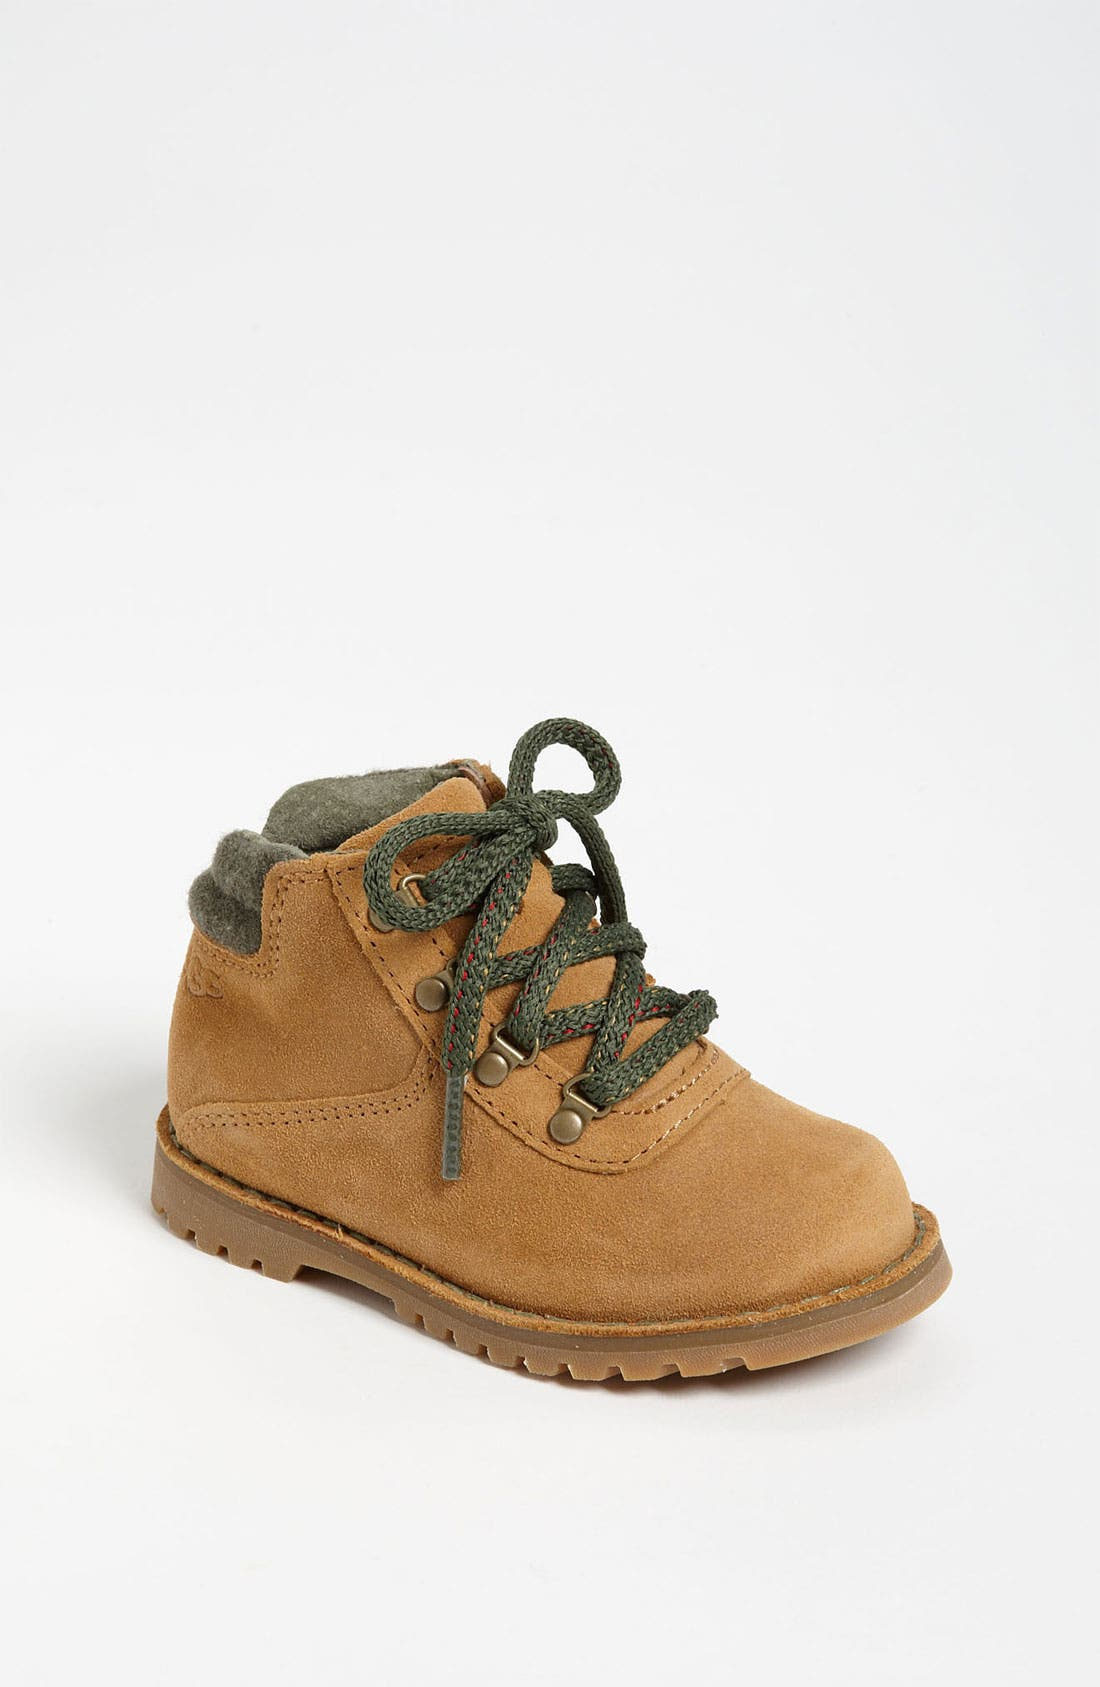 Main Image - UGG® Australia 'Payson' Boot (Walker & Toddler)